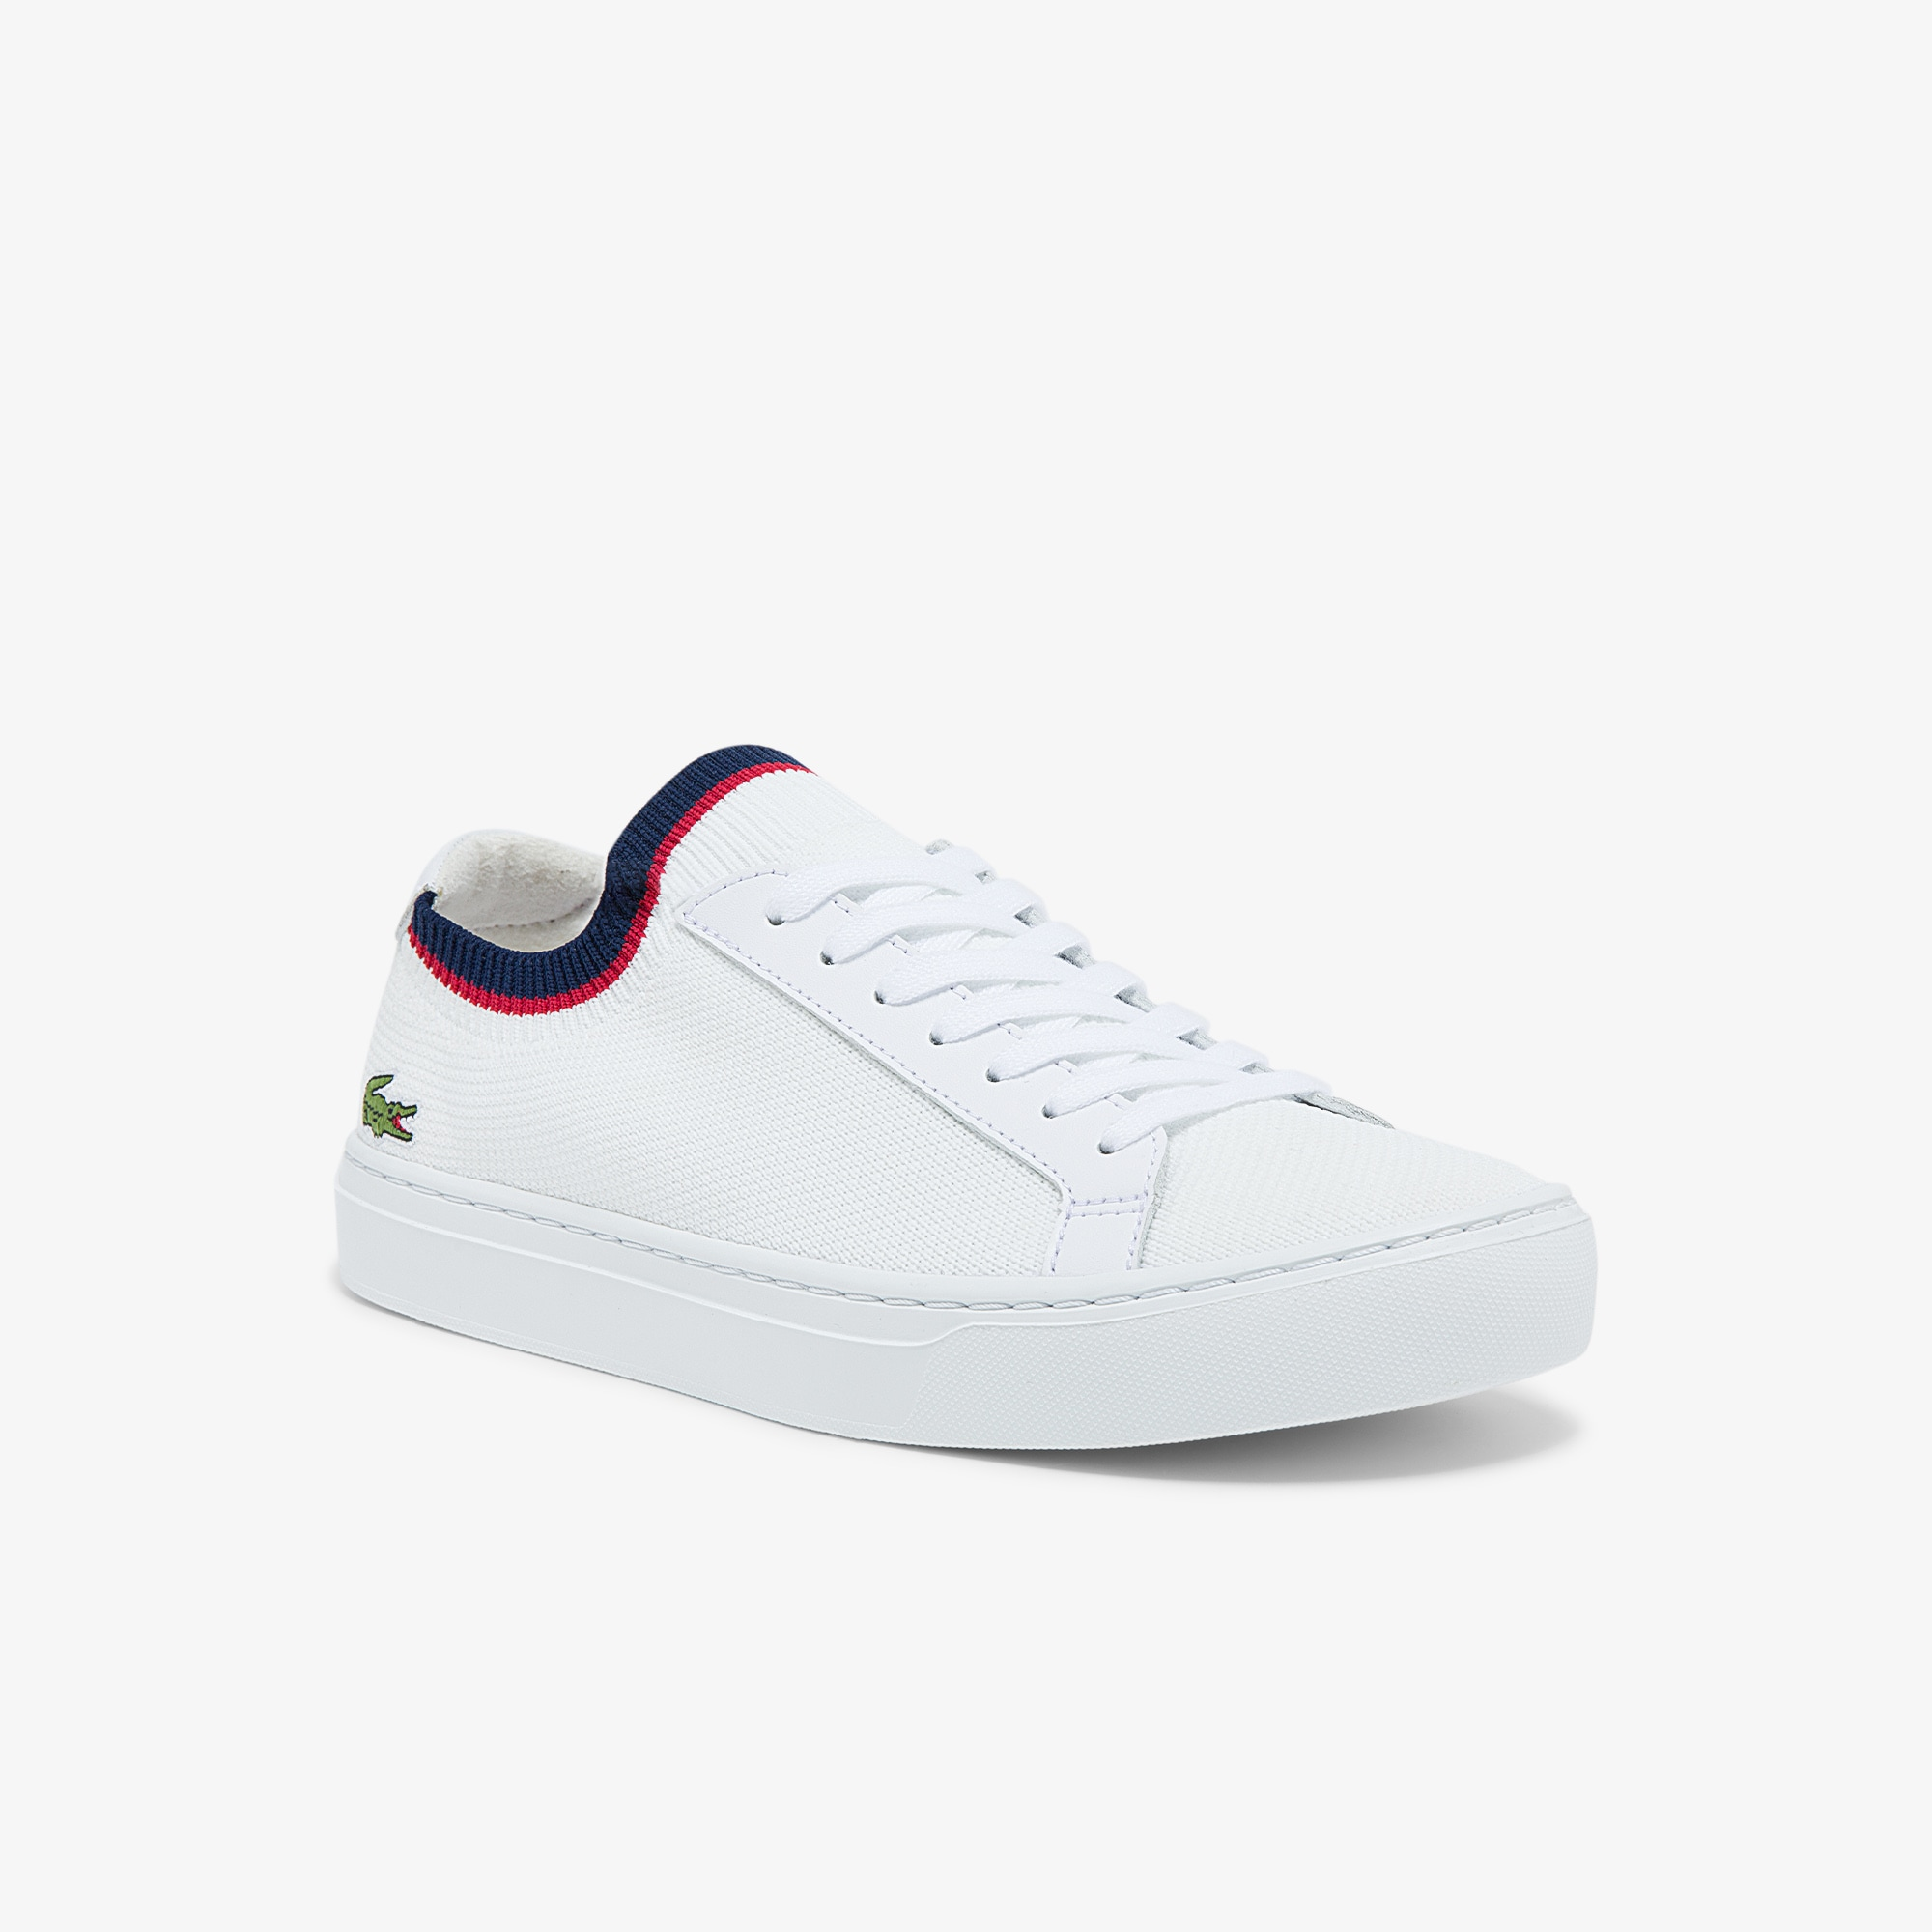 4b5f602c27 Chaussures homme | Collection Homme | LACOSTE